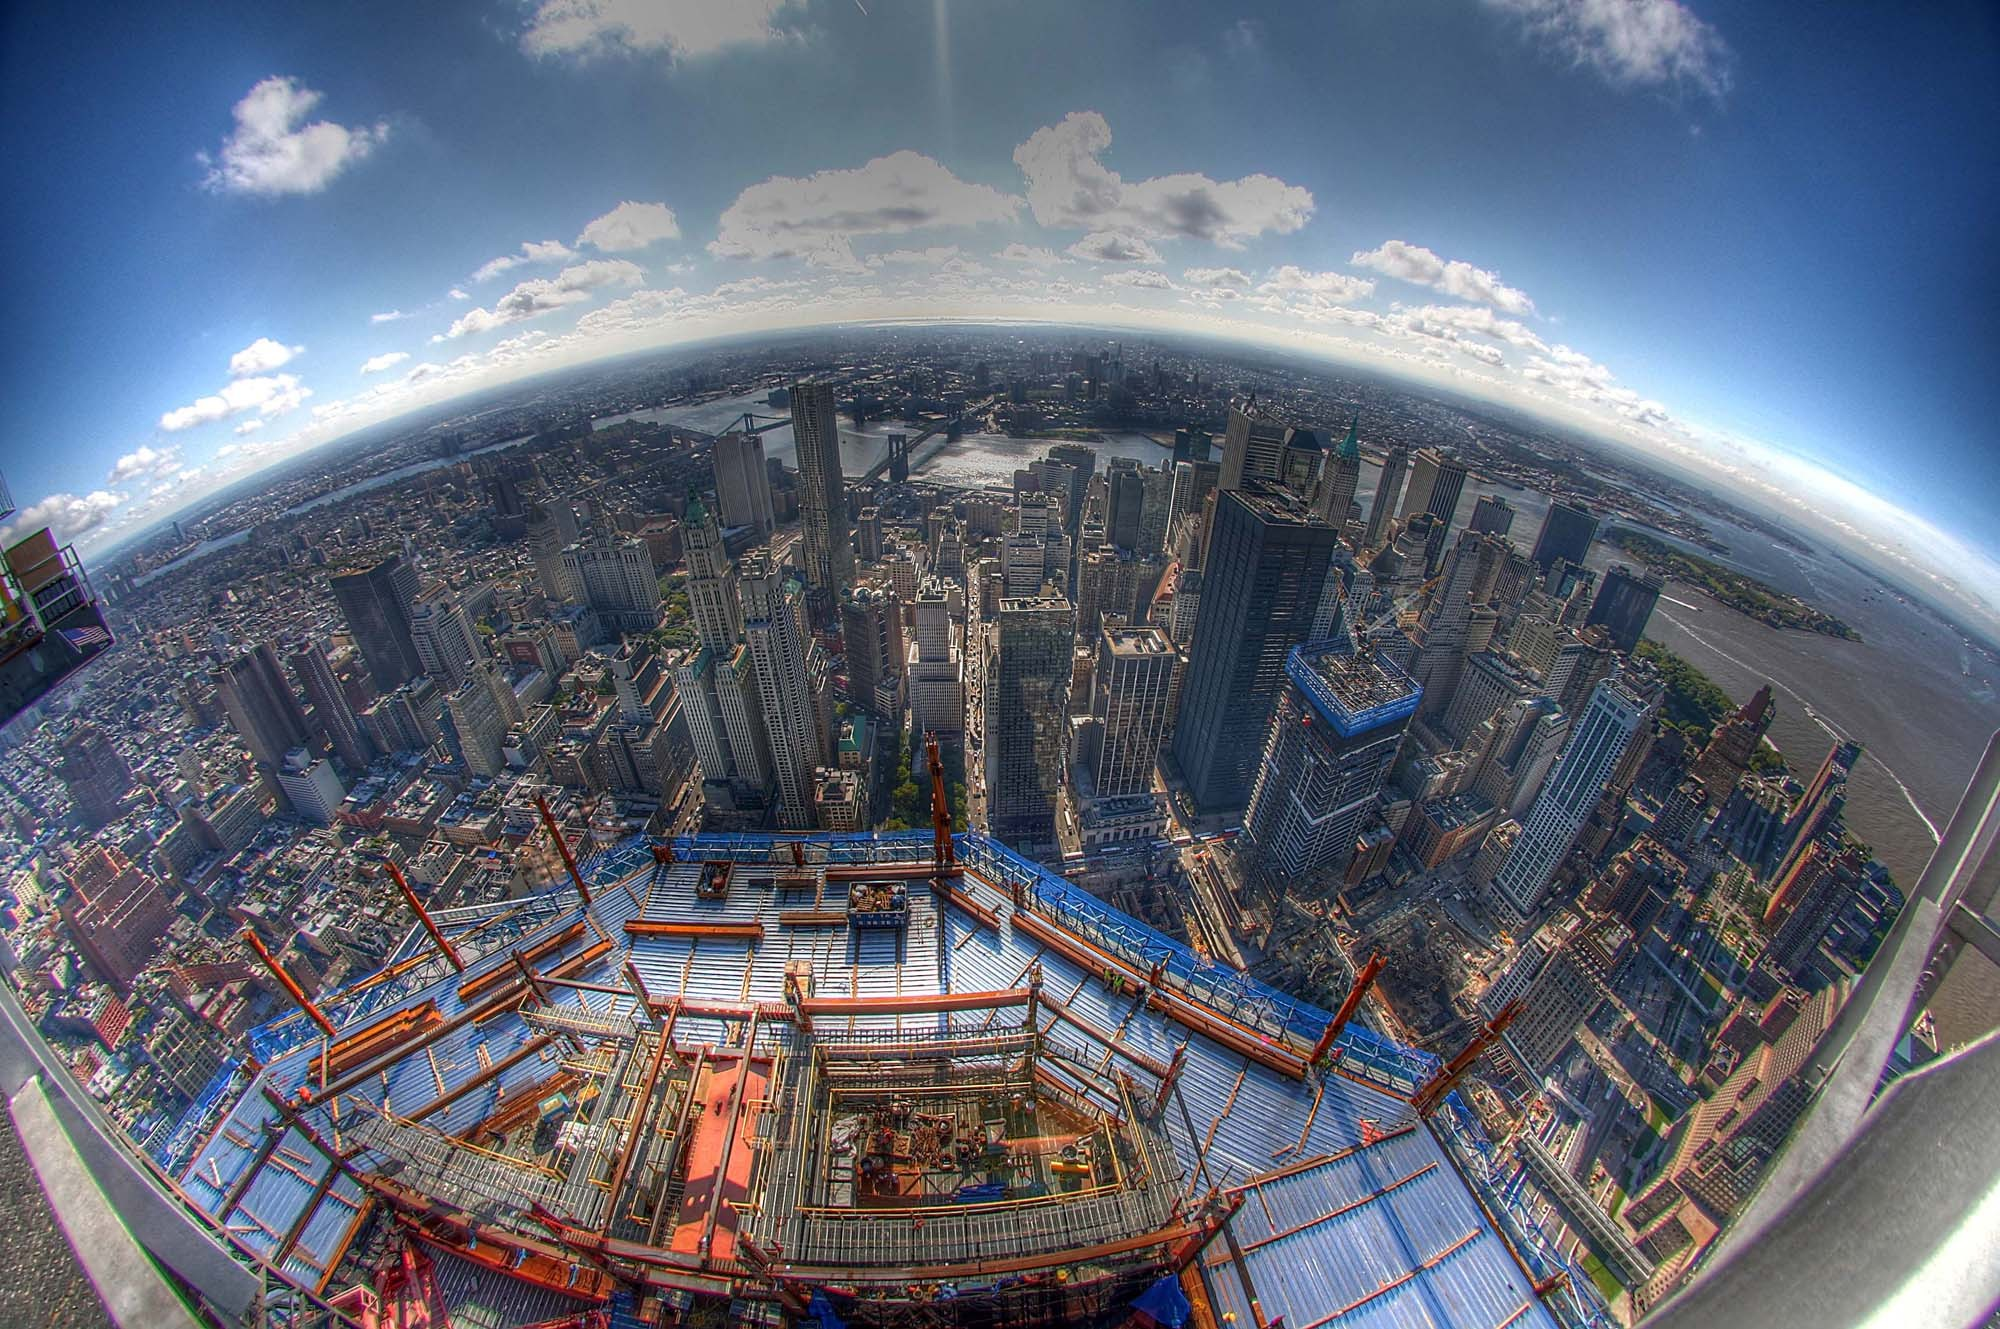 http://tcpm.mrlazyinc.com/files/images/coolshit/one_world_trade_center_tower_view_under_construction.jpg